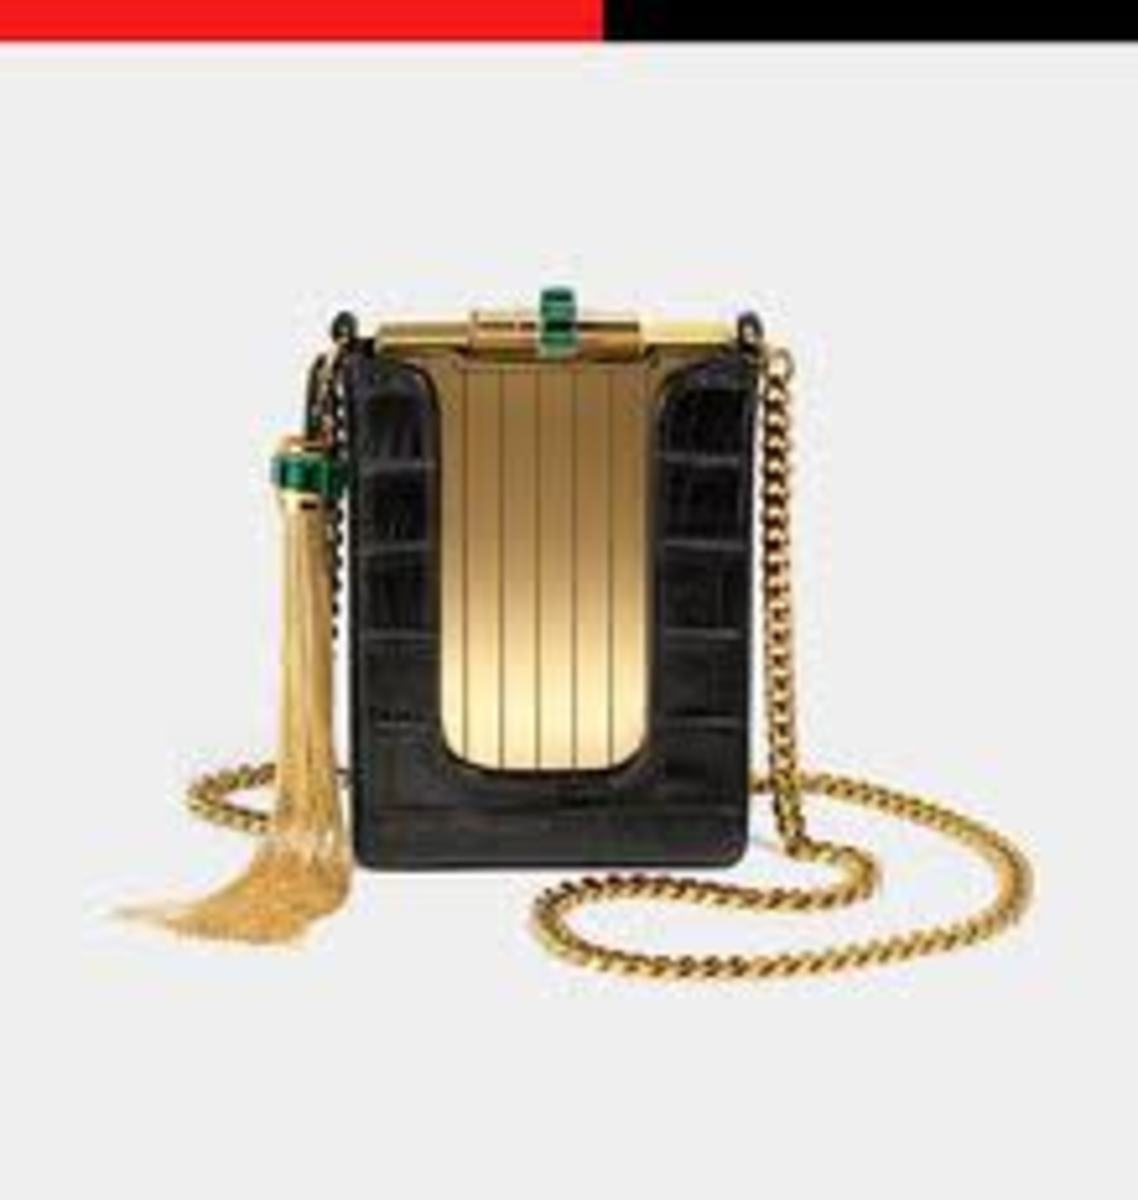 bags-bags-and-more-bags-designer-leather-string-or-bling-a-bag-for-all-ocassion